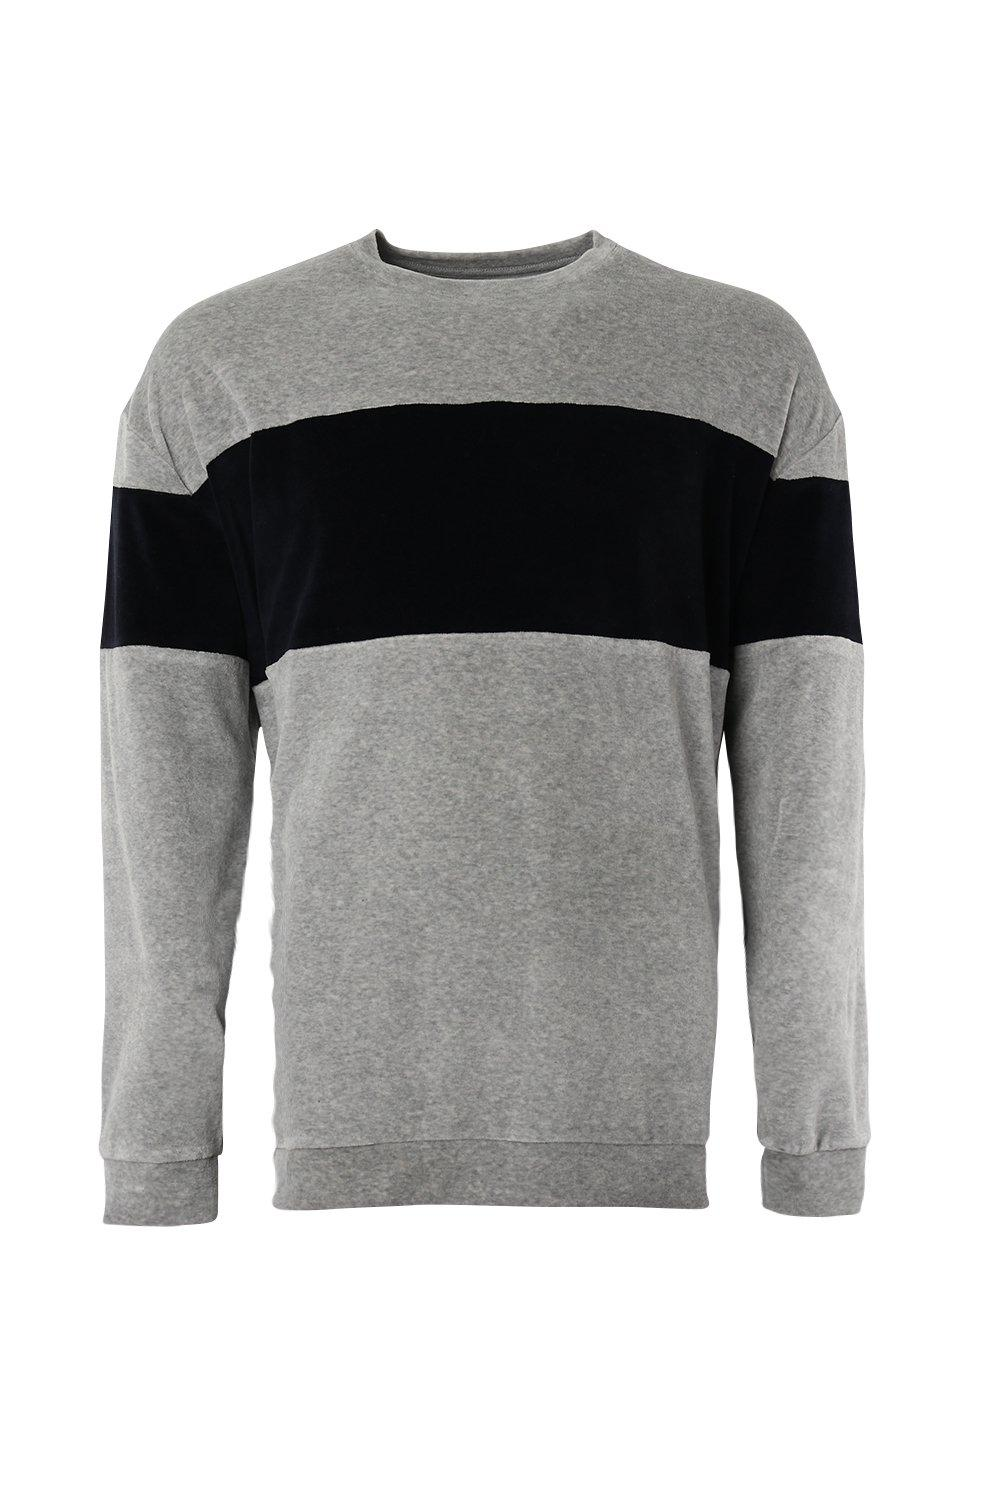 boohooMAN grey Oversized Sweater With Towelling Colour Block